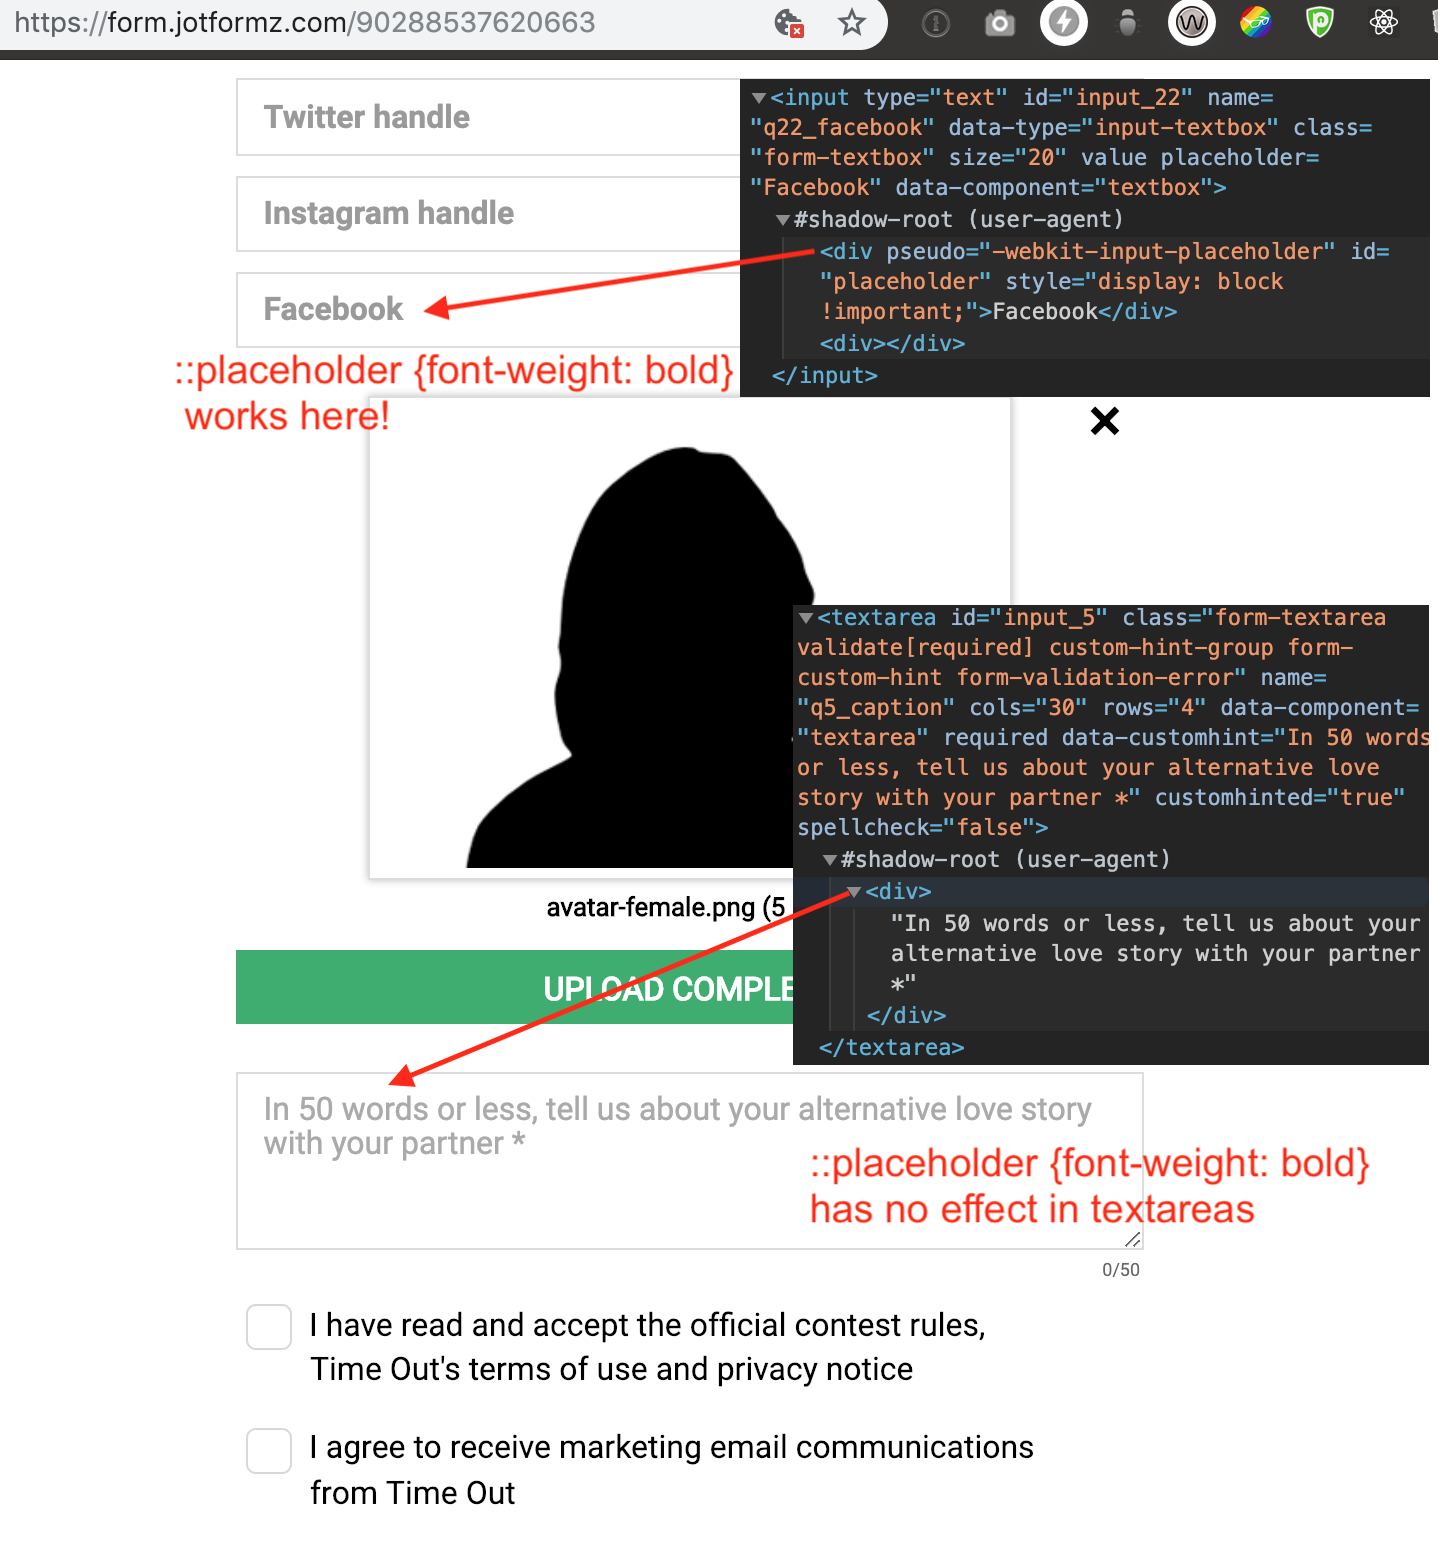 How to style textarea::placeholder?